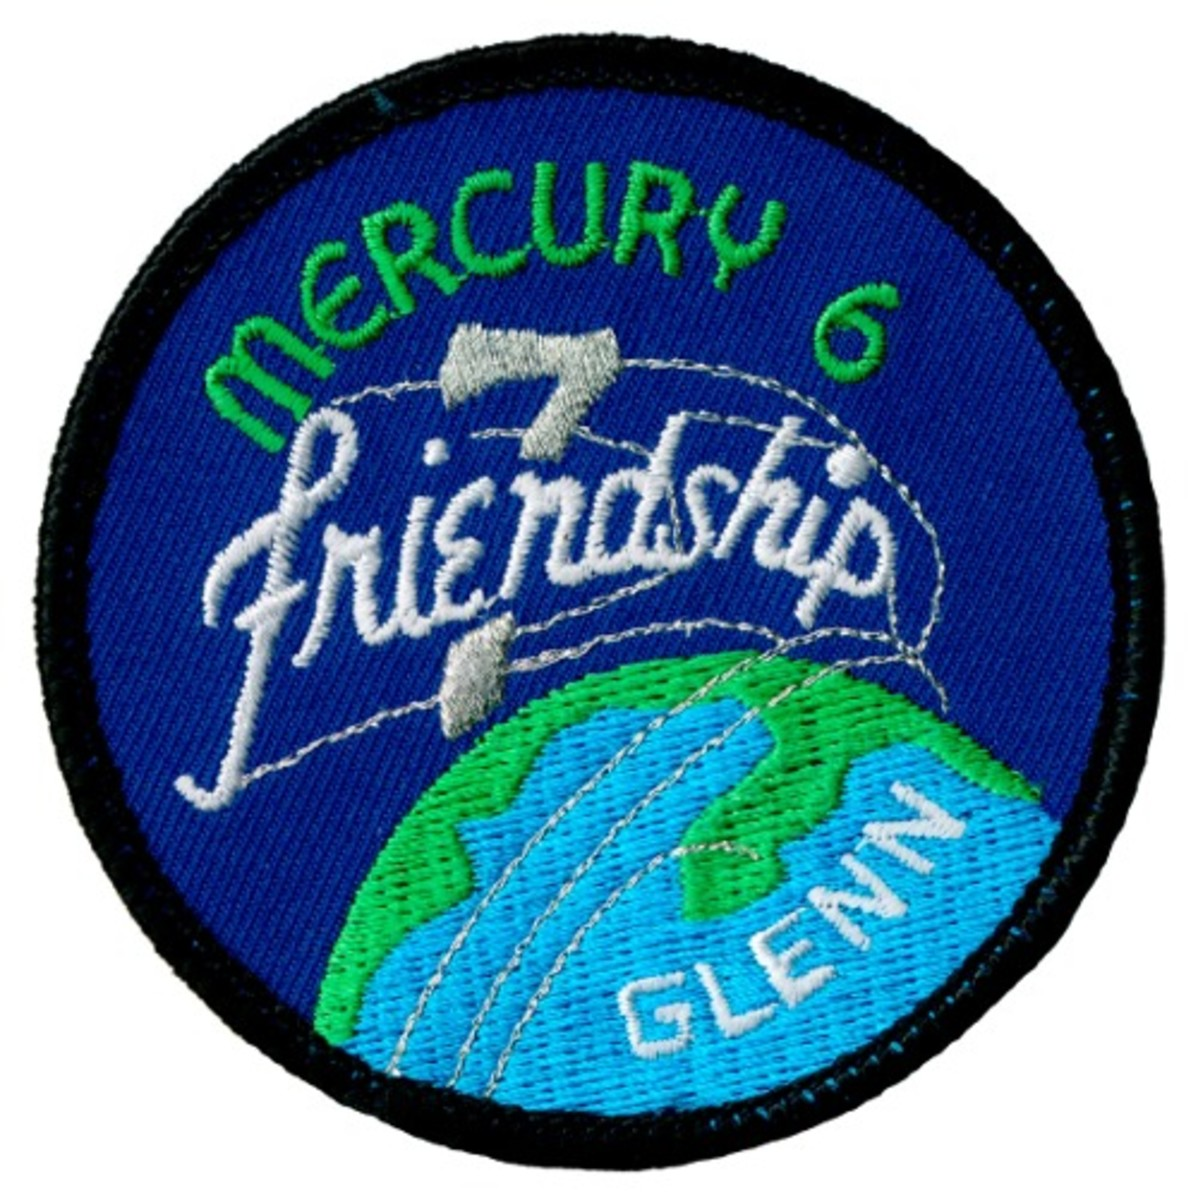 Mission Patch: John Glenn/Friendship 7